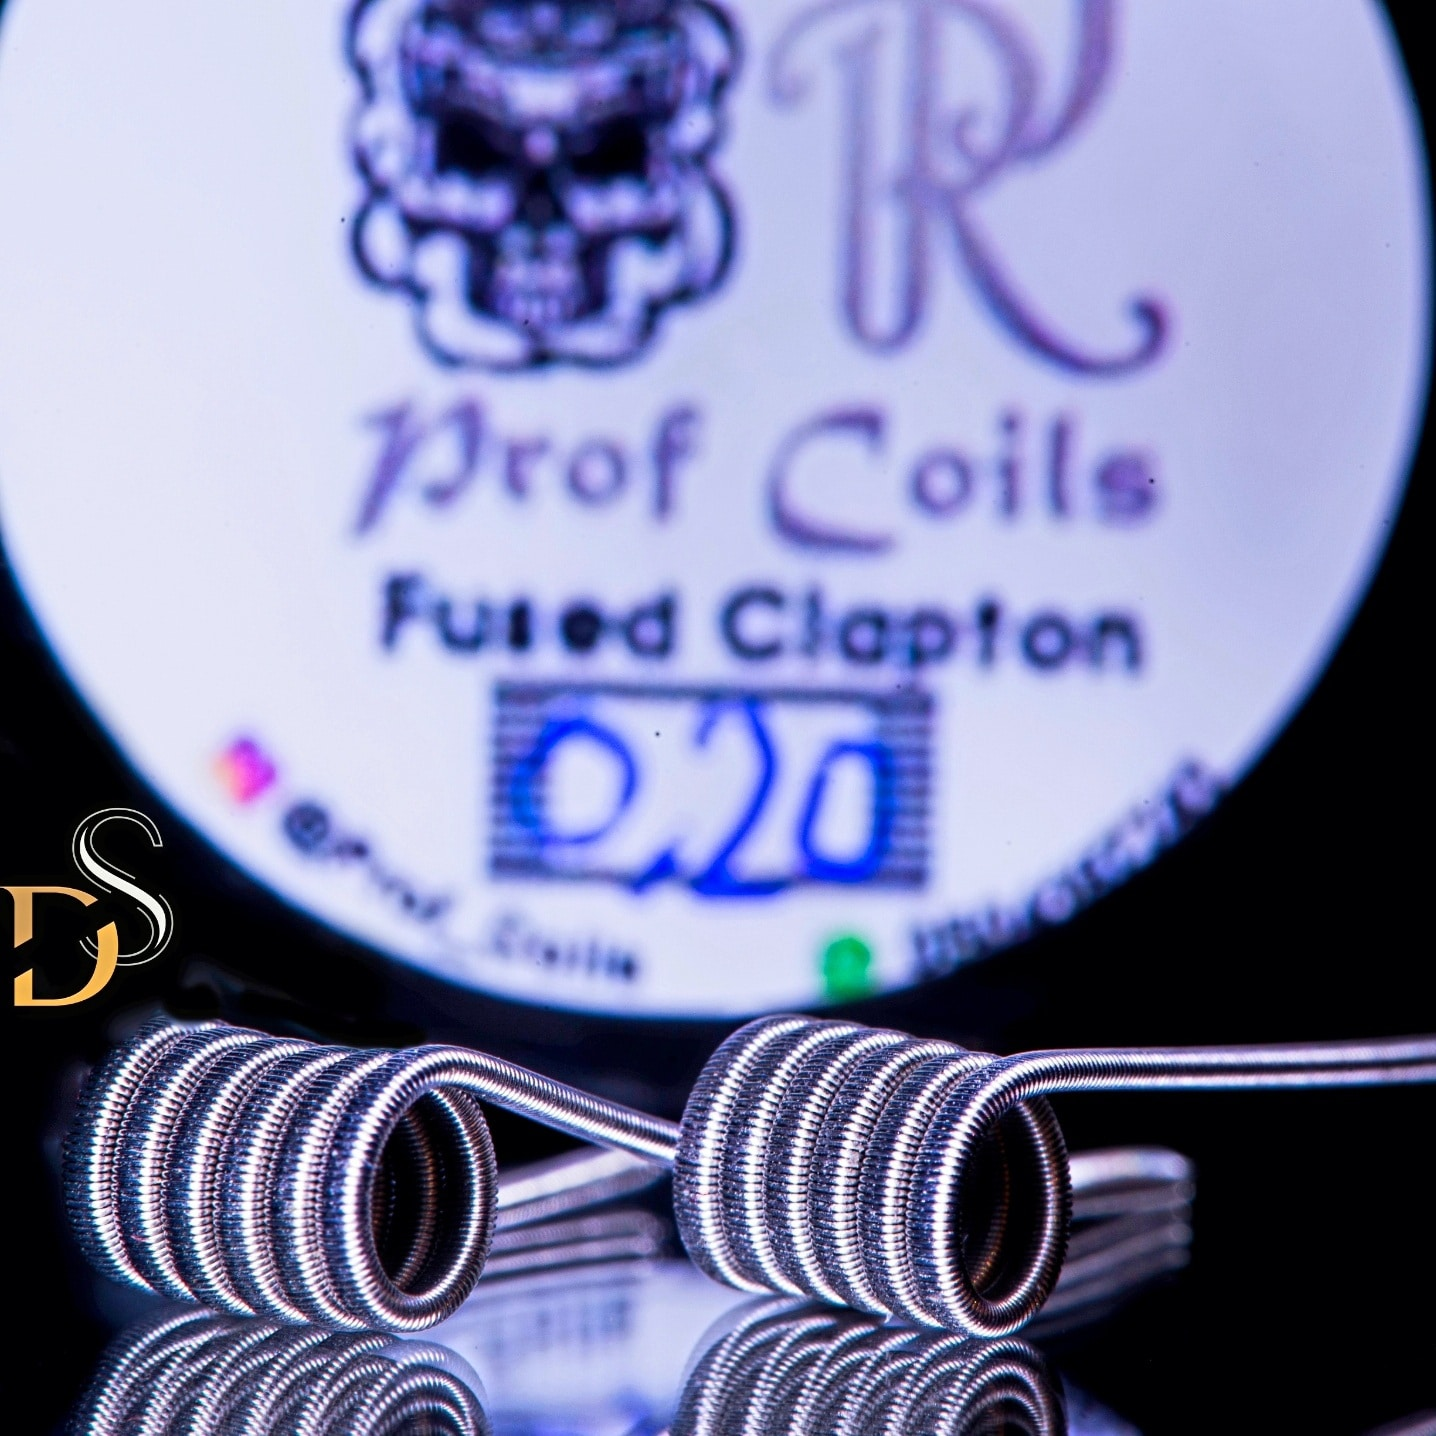 PRof Coils - Fused Clapton 0.20ohm